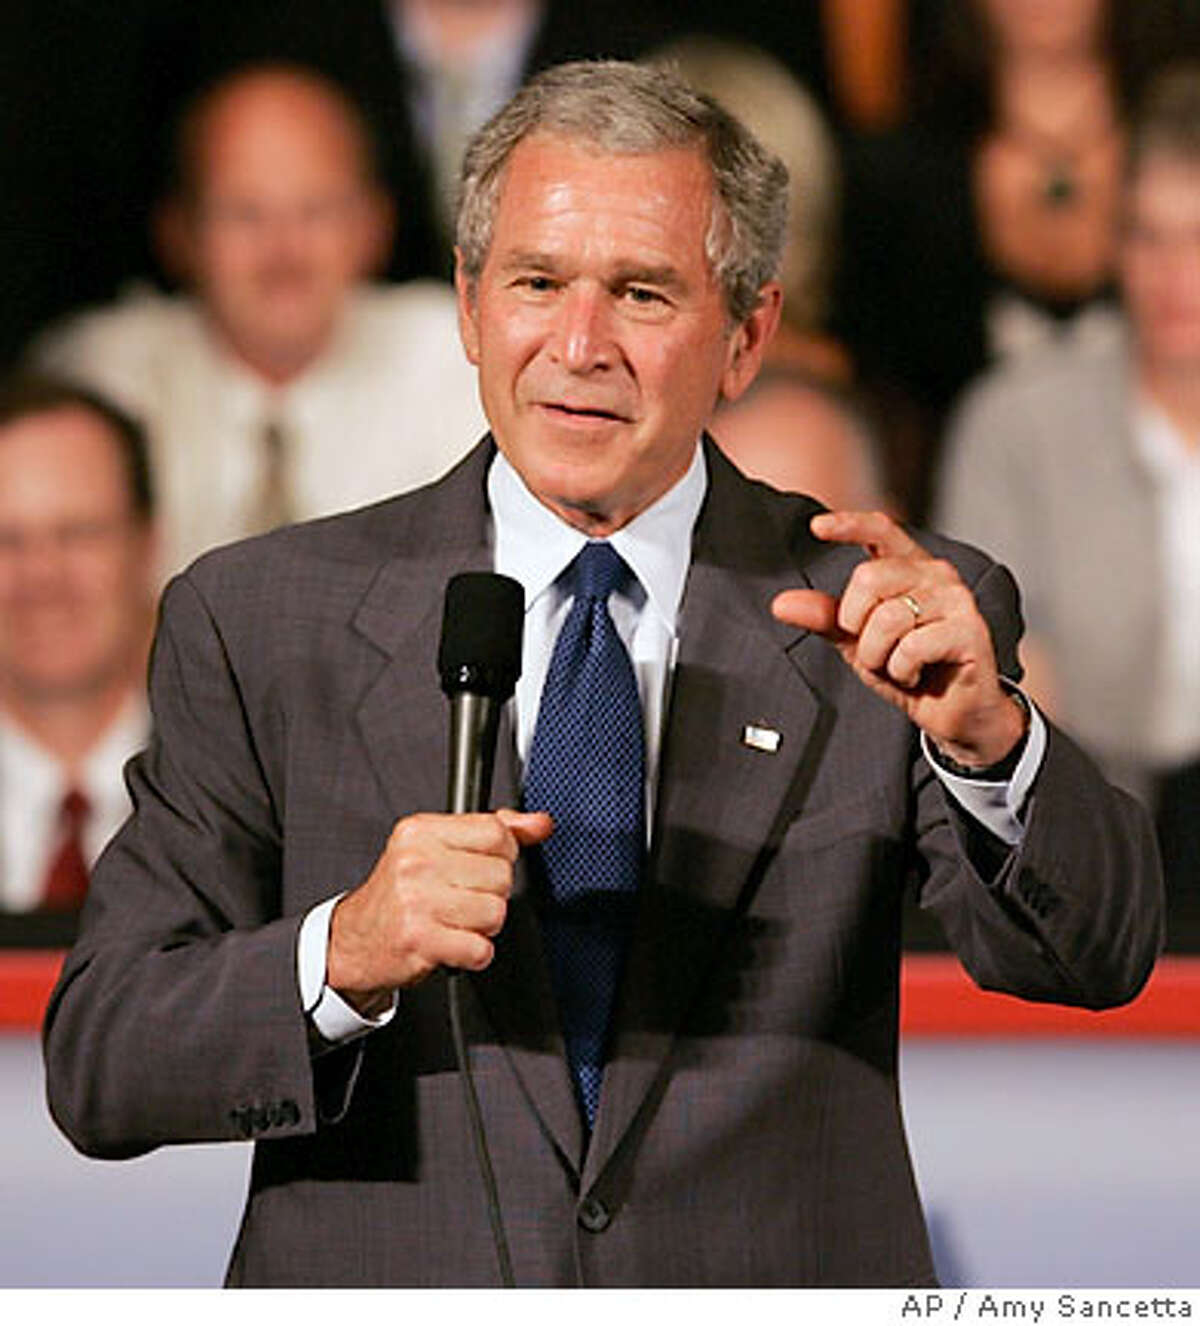 President Bush addresses the Greater Cleveland Partnership in Cleveland, Tuesday, July 10, 2007. (AP Photo/Amy Sancetta)